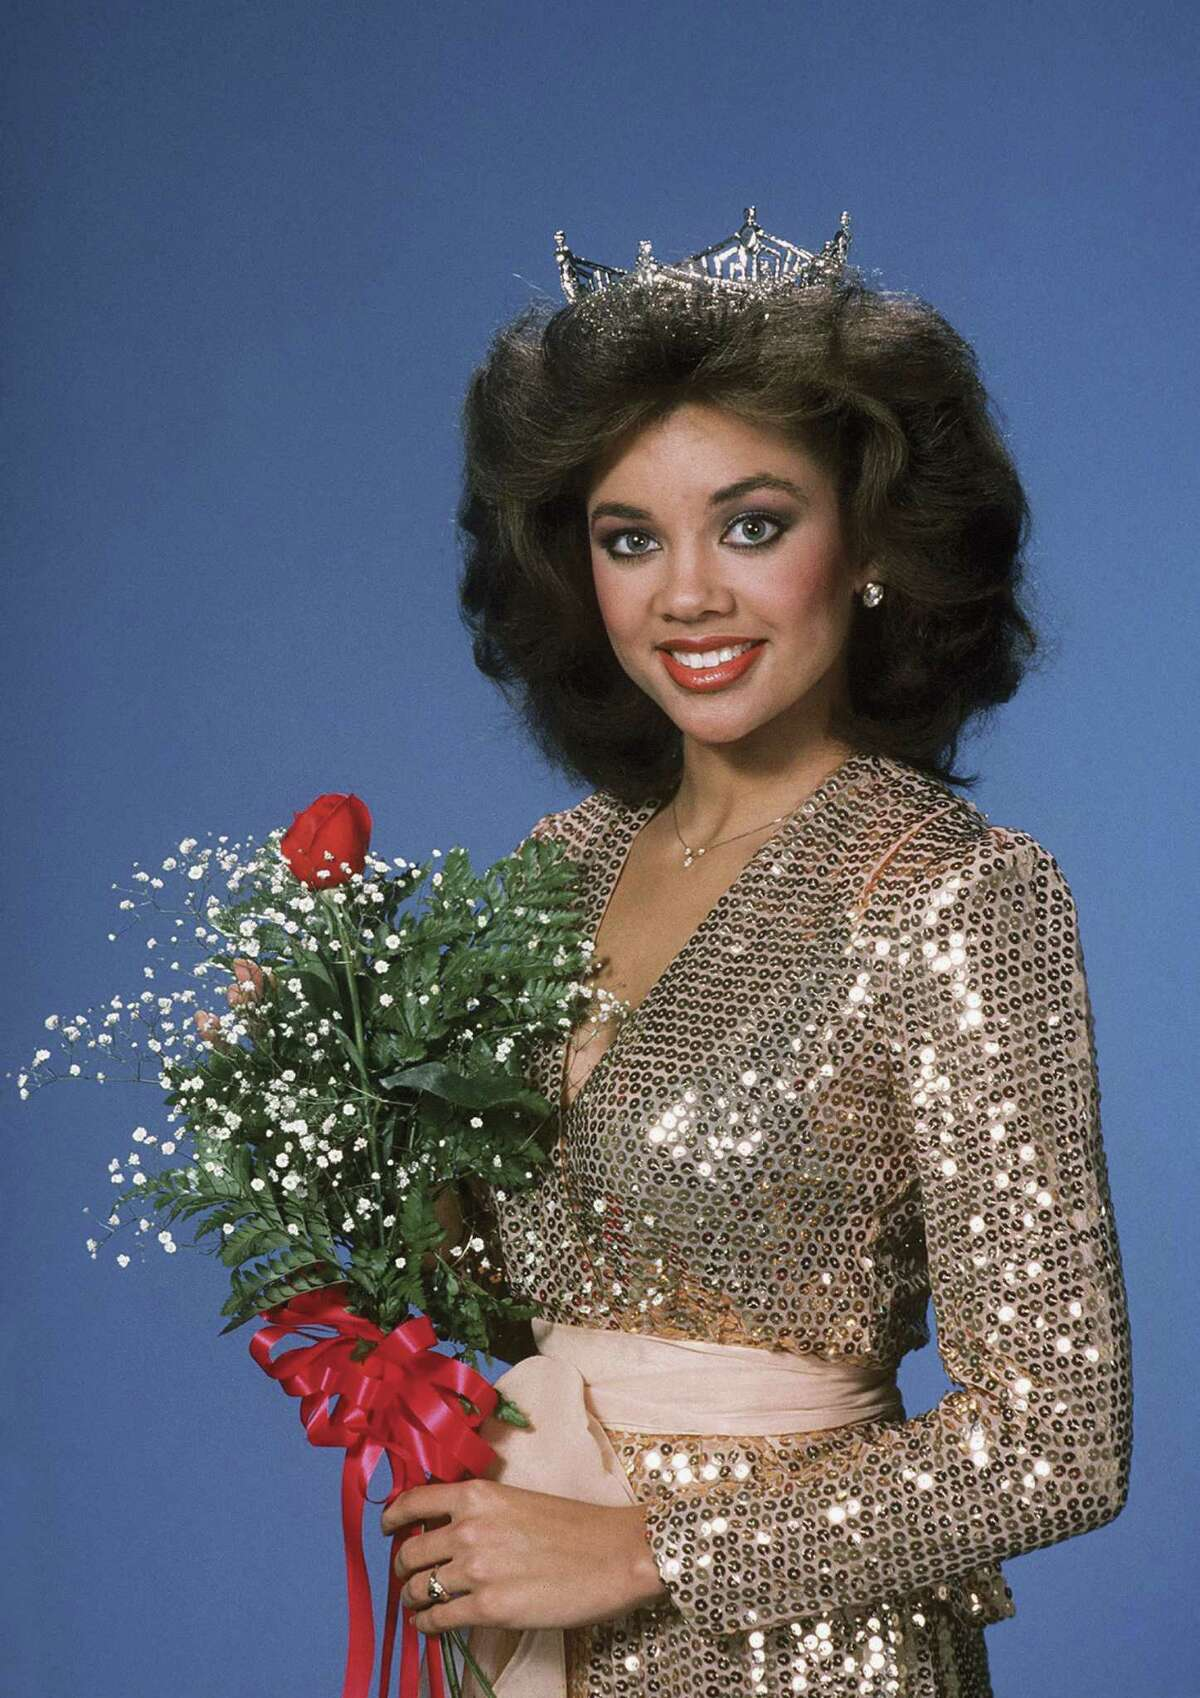 Miss America In 1983, Williams became the first African-American woman to win the crown. She later relinquished it when Penthouse magazine published nude photographs of her.